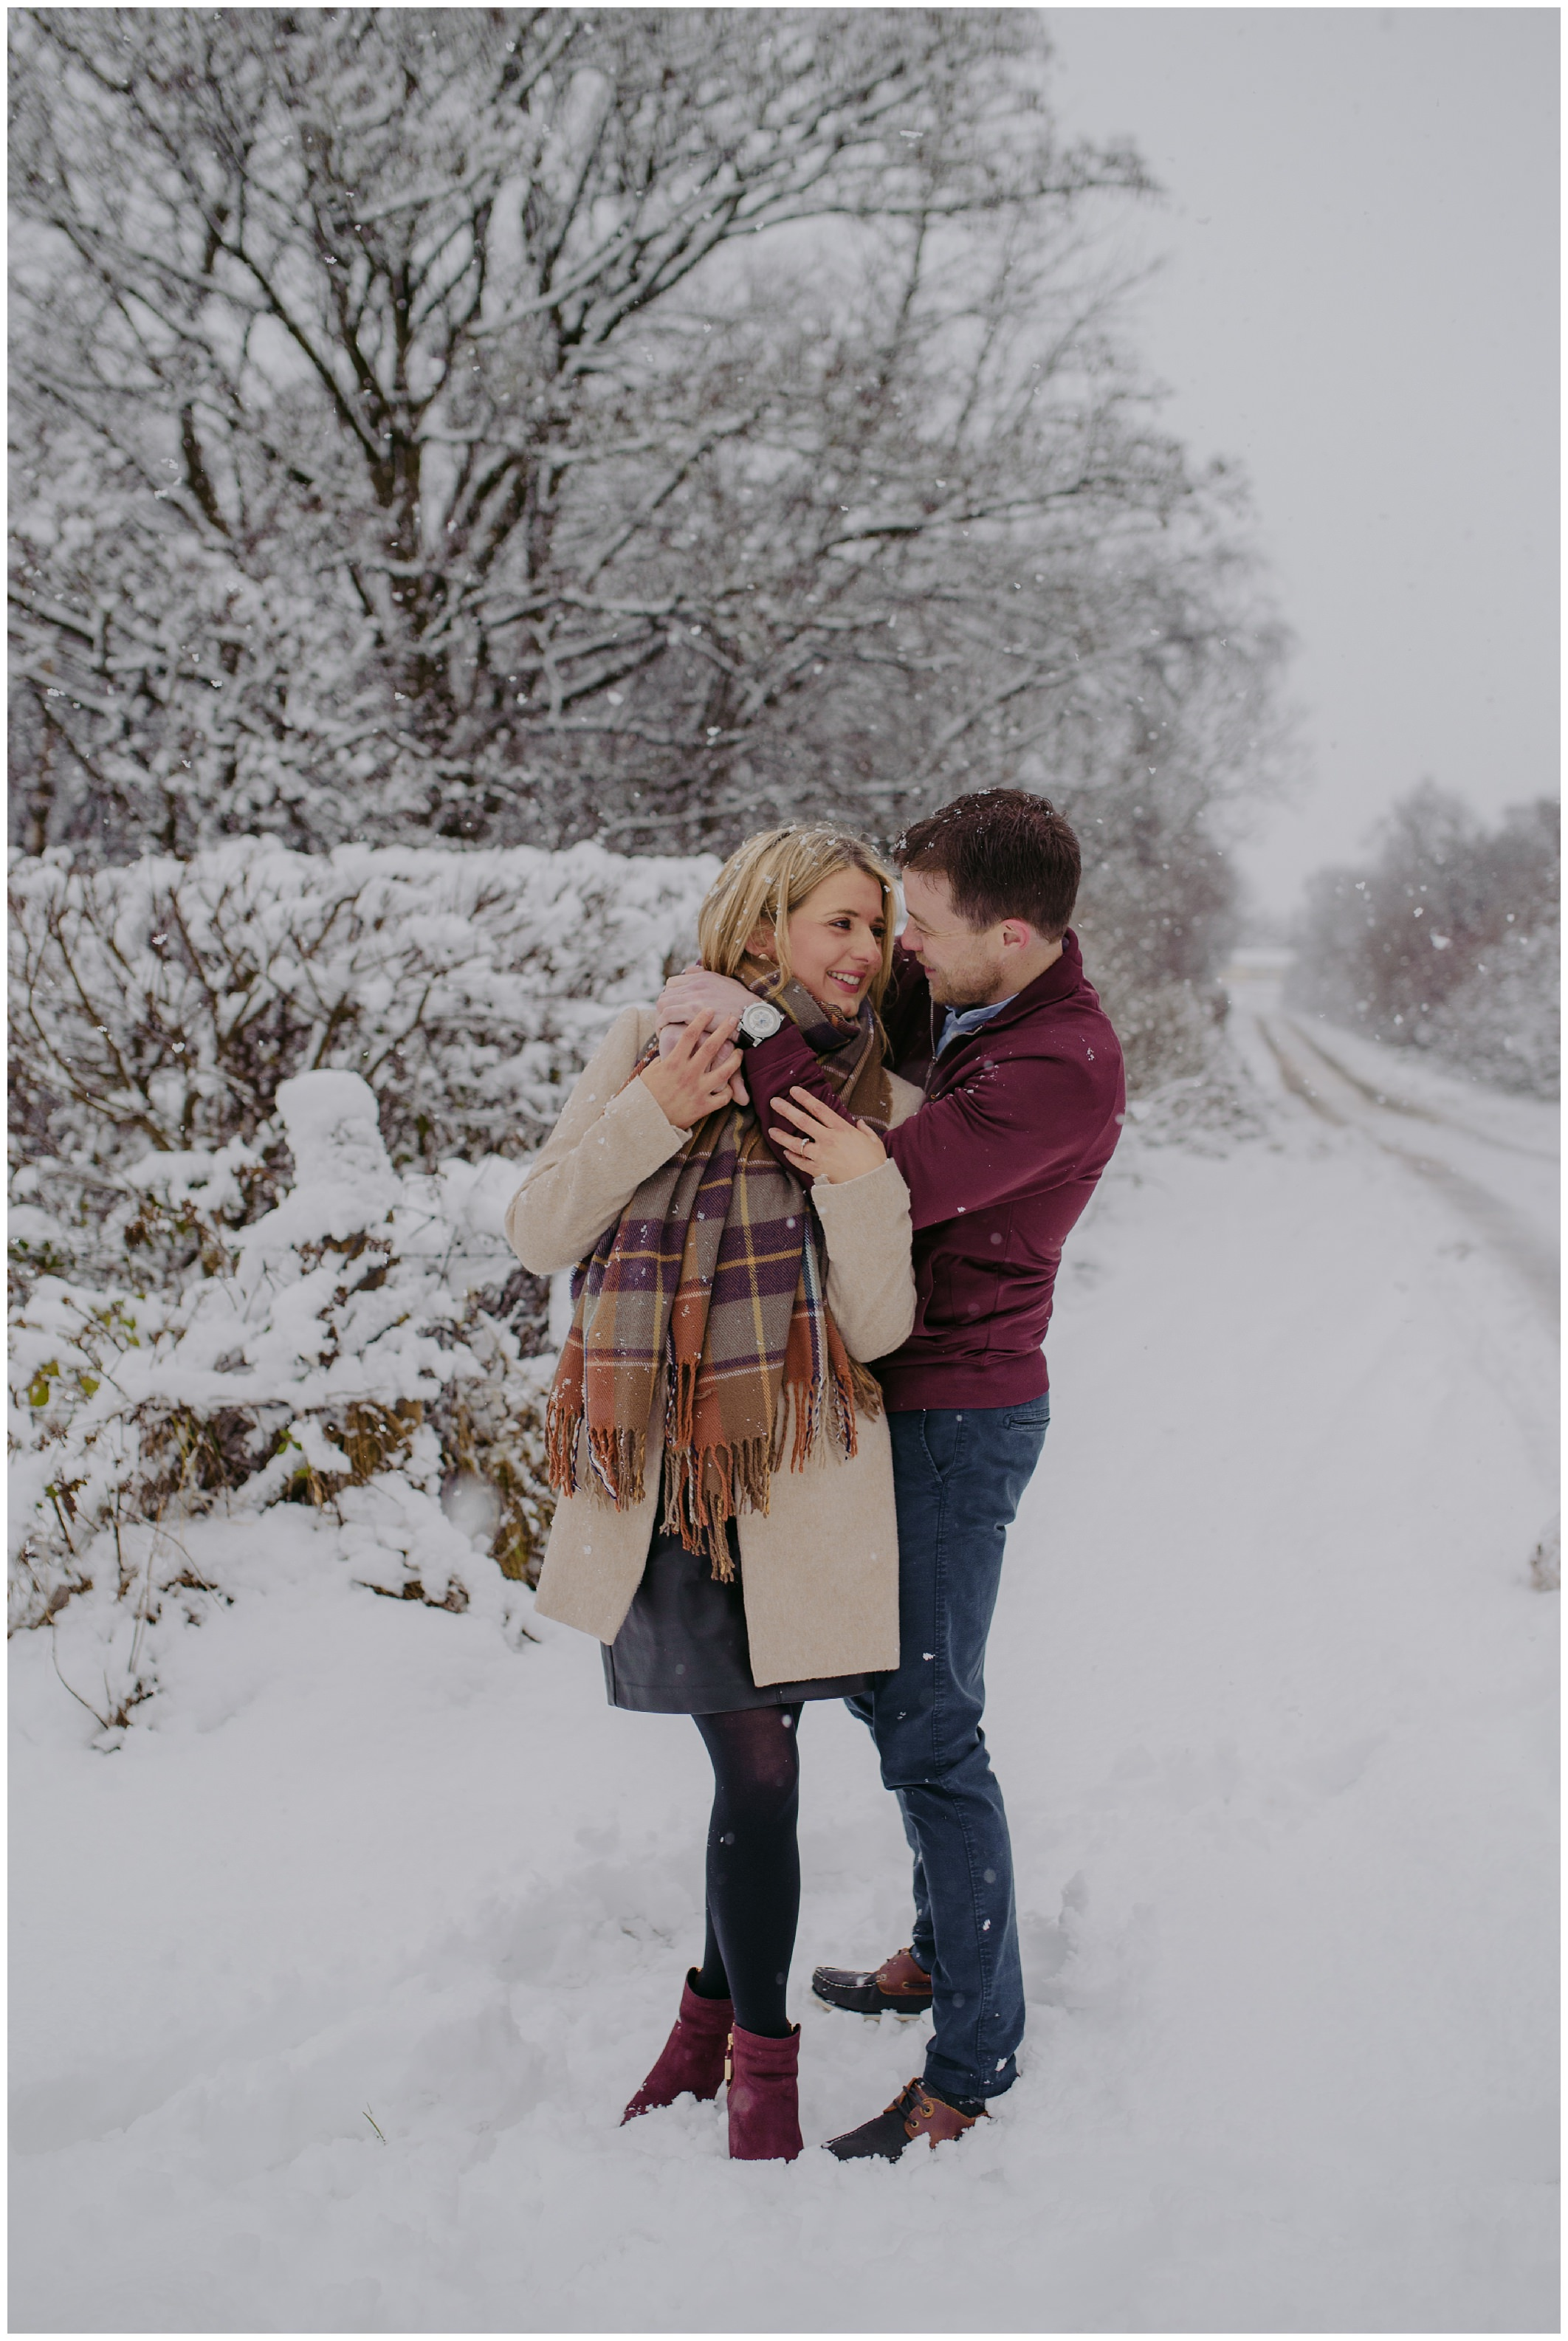 adela_rossa_pre_wedding_jude_browne_photography_0005.jpg